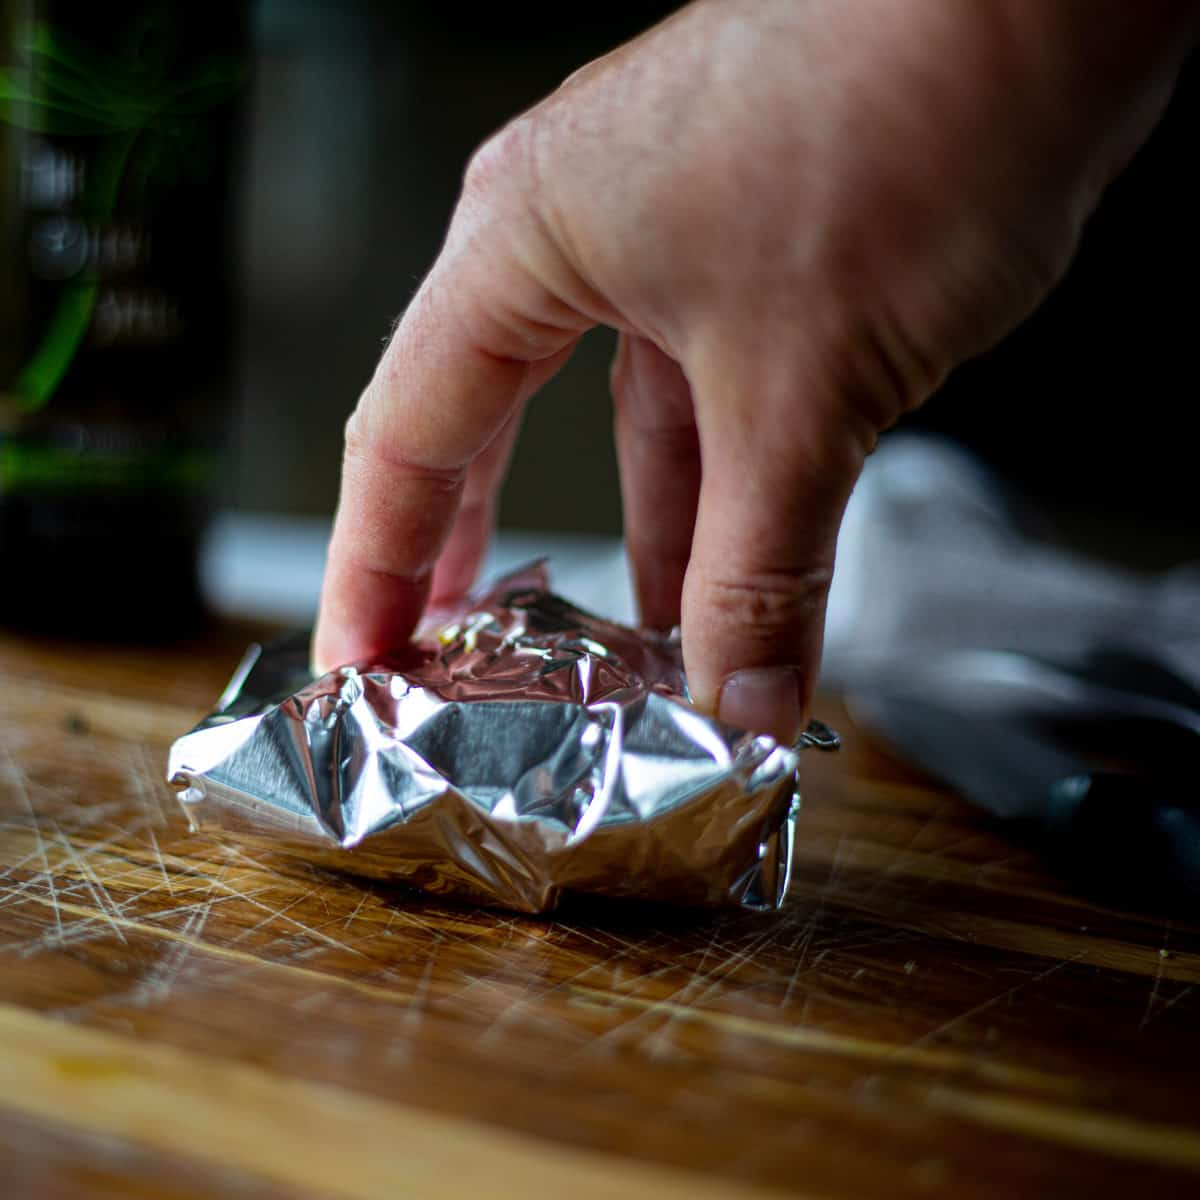 A hand sealing a tin foil packed shut on a cutting board.